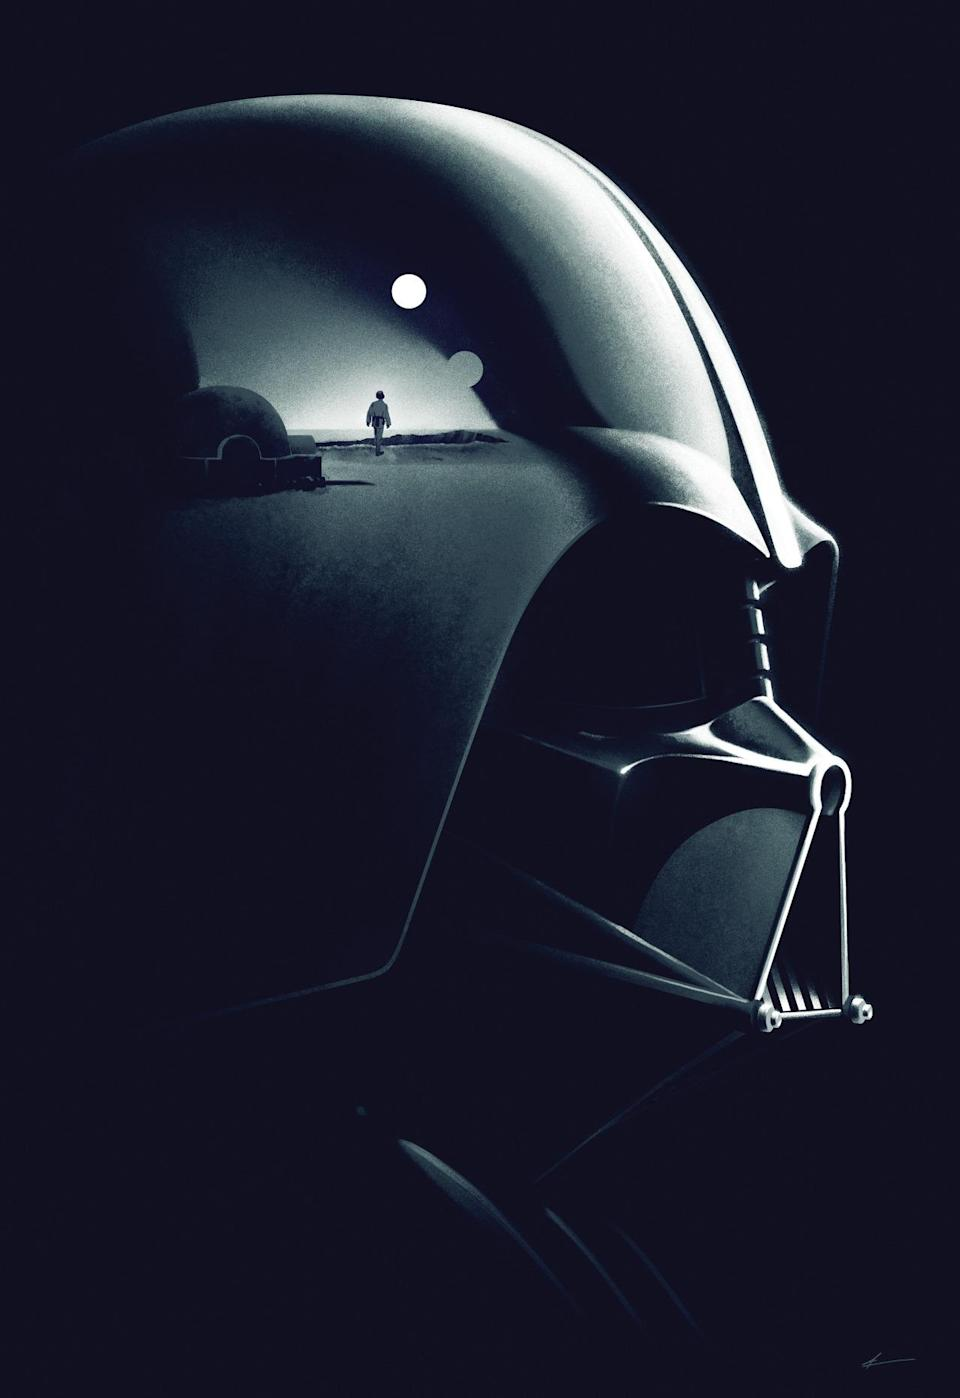 """<p>This marks the world premiere of """"Legacy,"""" one of four new works commissioned for the """"Star Wars Art: A Poster Collection."""" Designed by the Phantom City studio, father and son collide as Vader's helmet reflects the classic """"A New Hope"""" image of Luke watching Tatooine's twin suns set.</p>"""